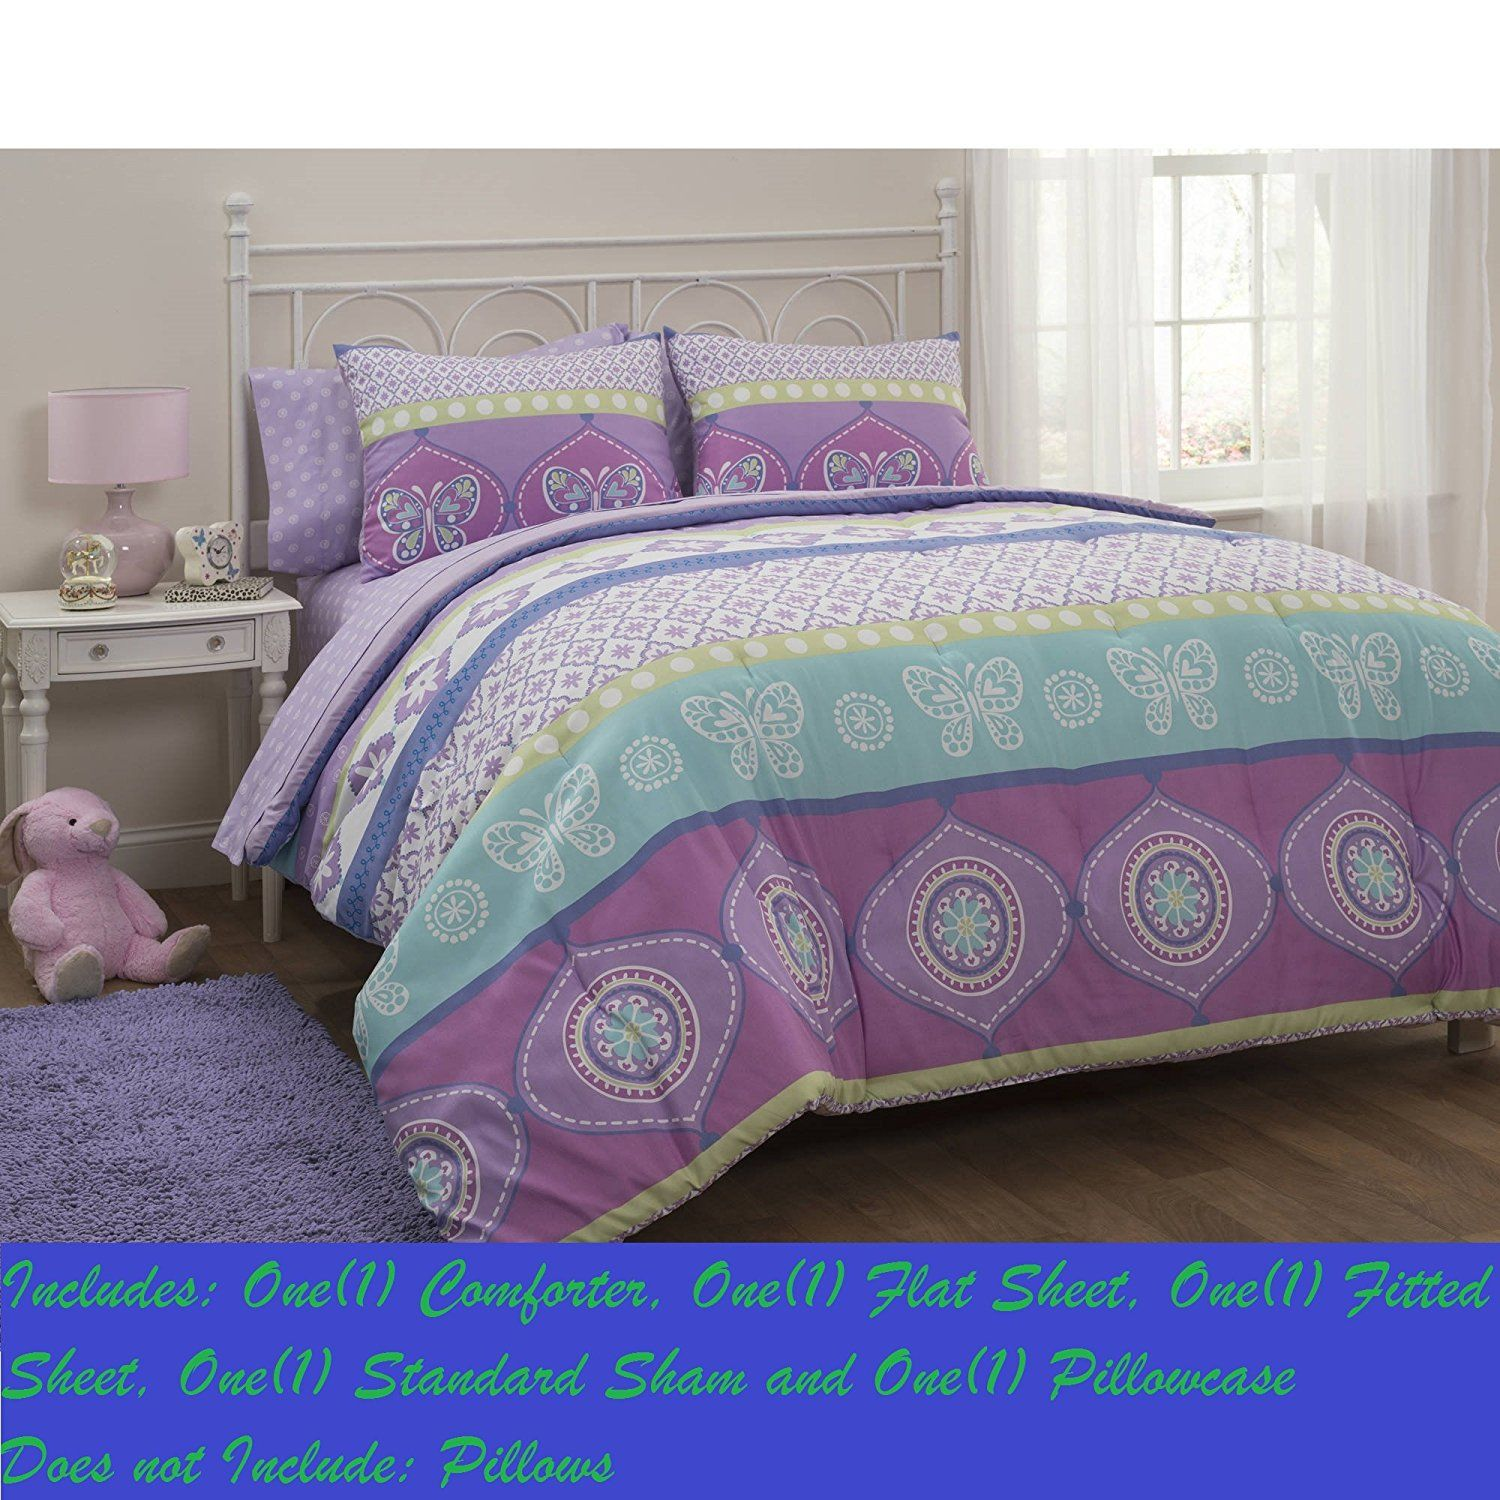 bed pc image sets king at and sheets size bedding quilt cover touchofclass purple unique fantastic dreaded designs comforter white solid harmonee set picture